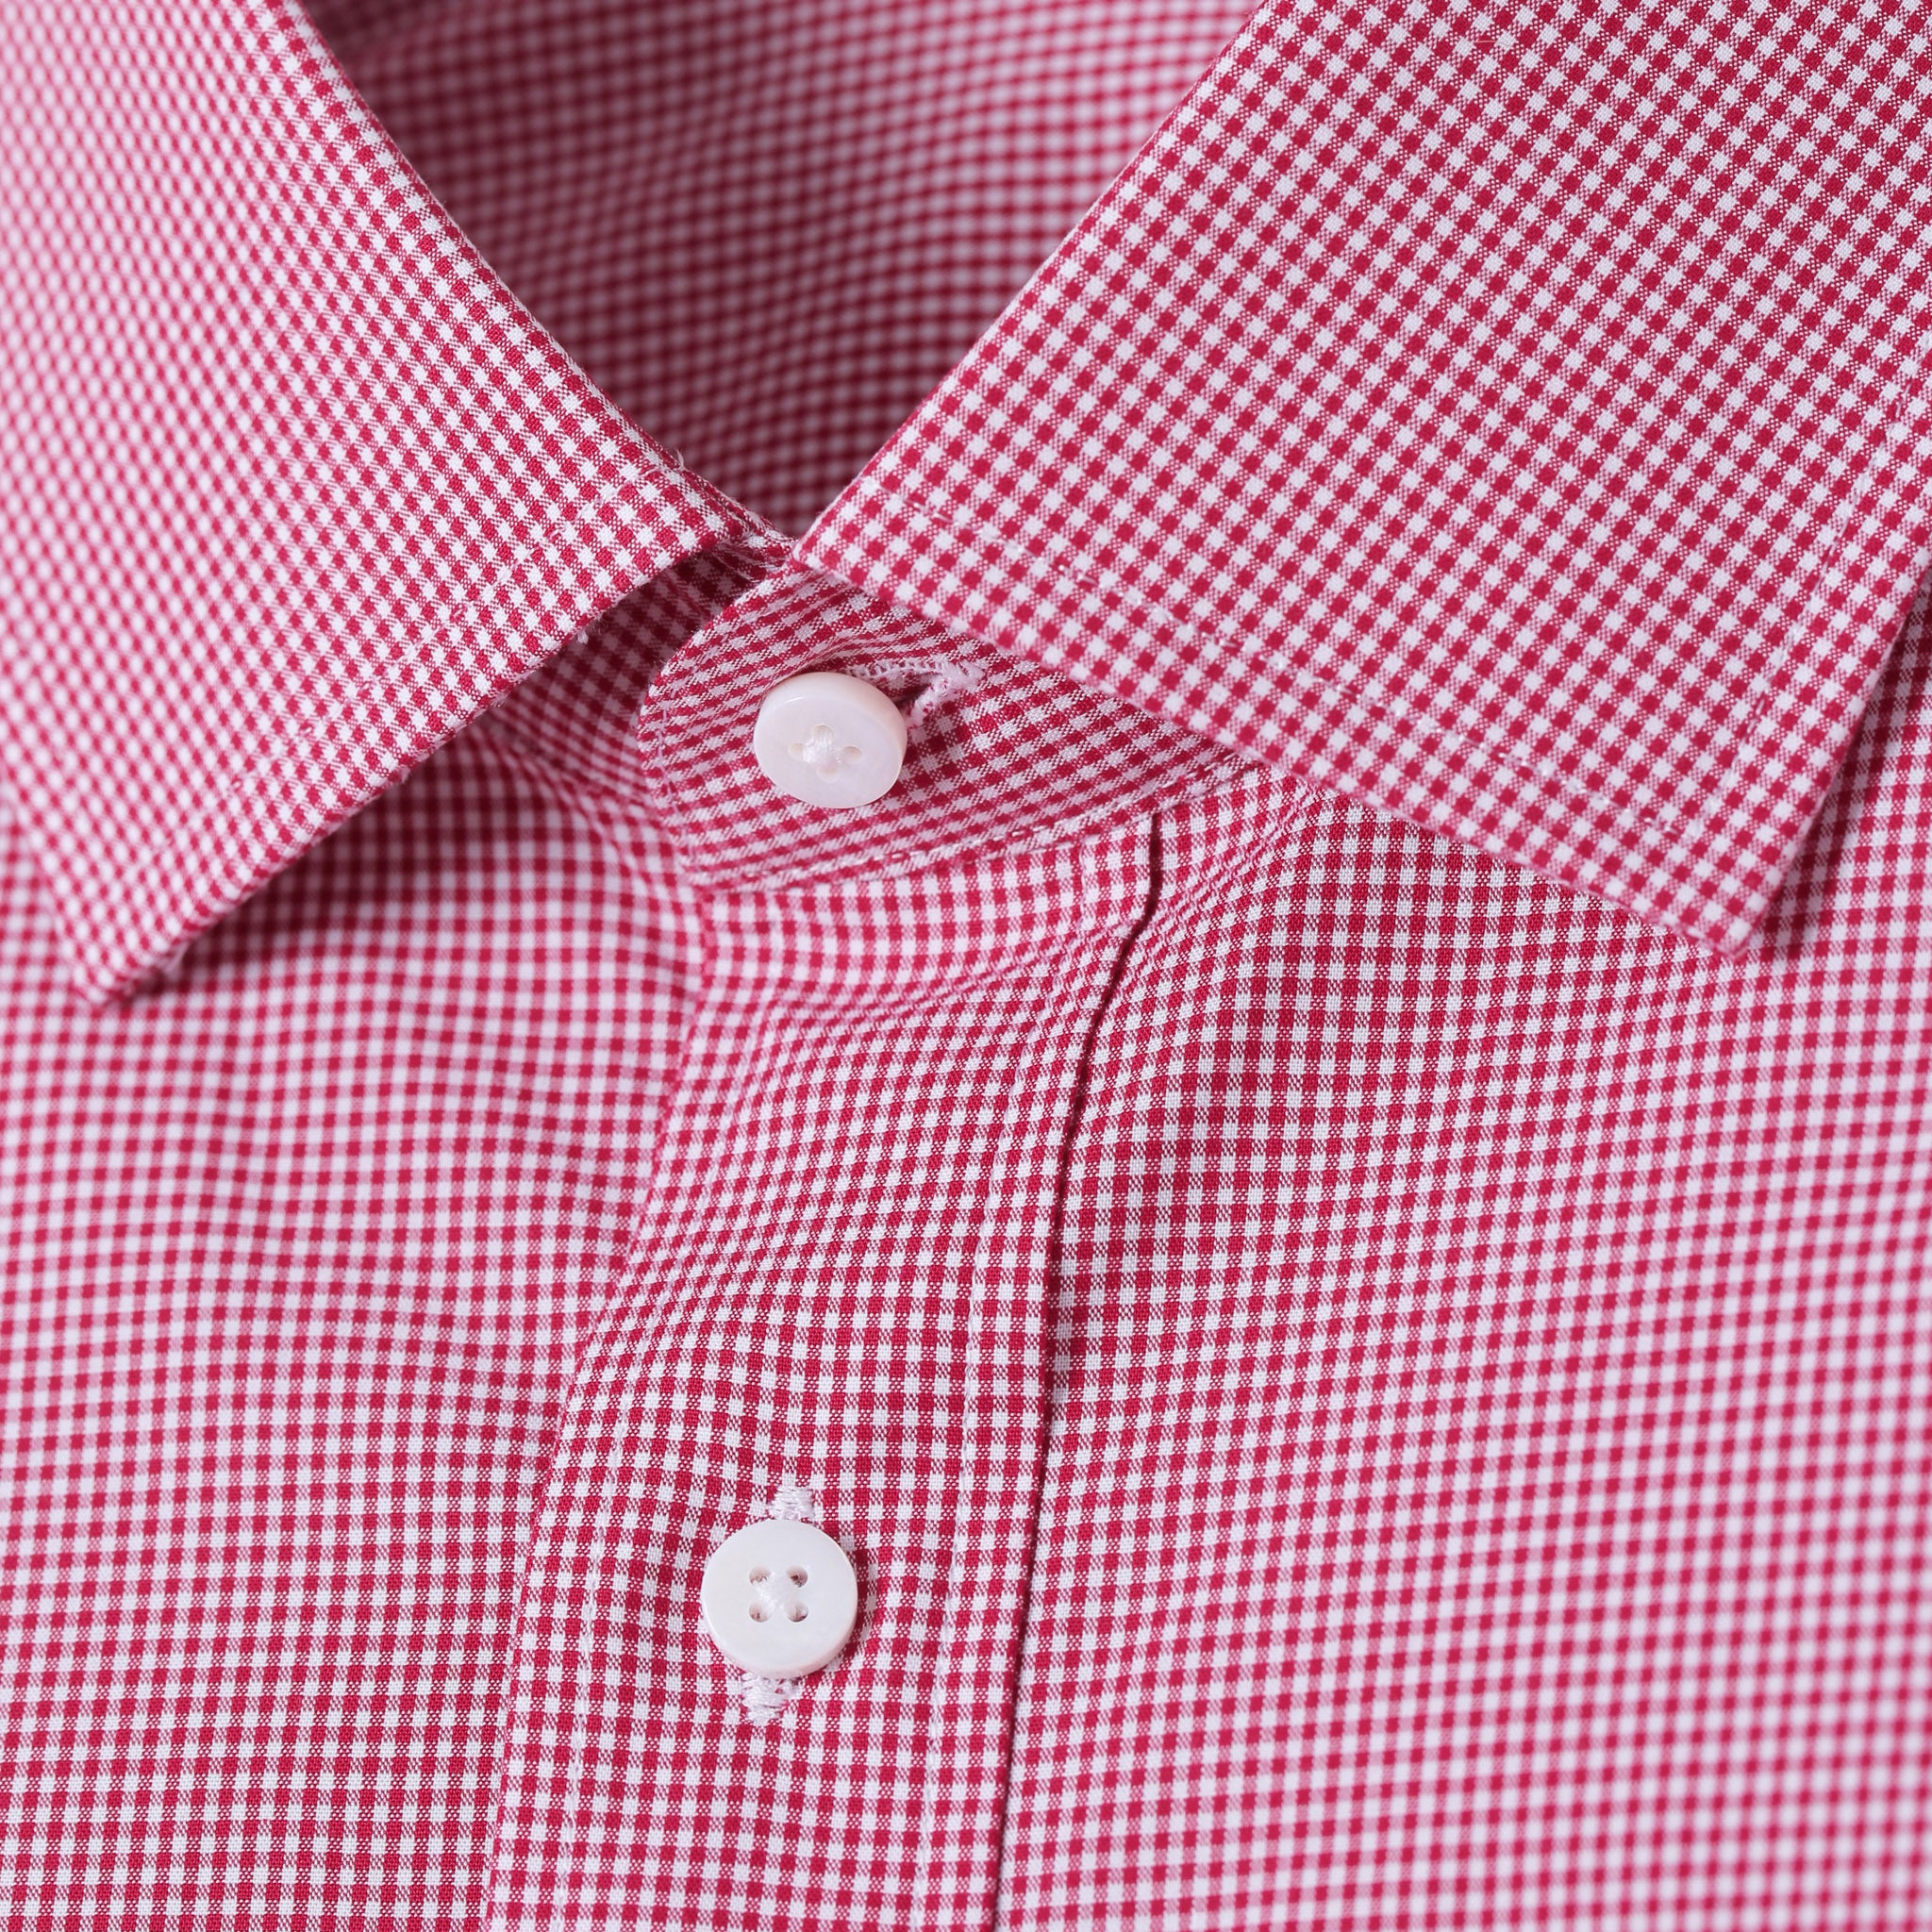 Mason Everyday Premium Shirt in Red Gingham